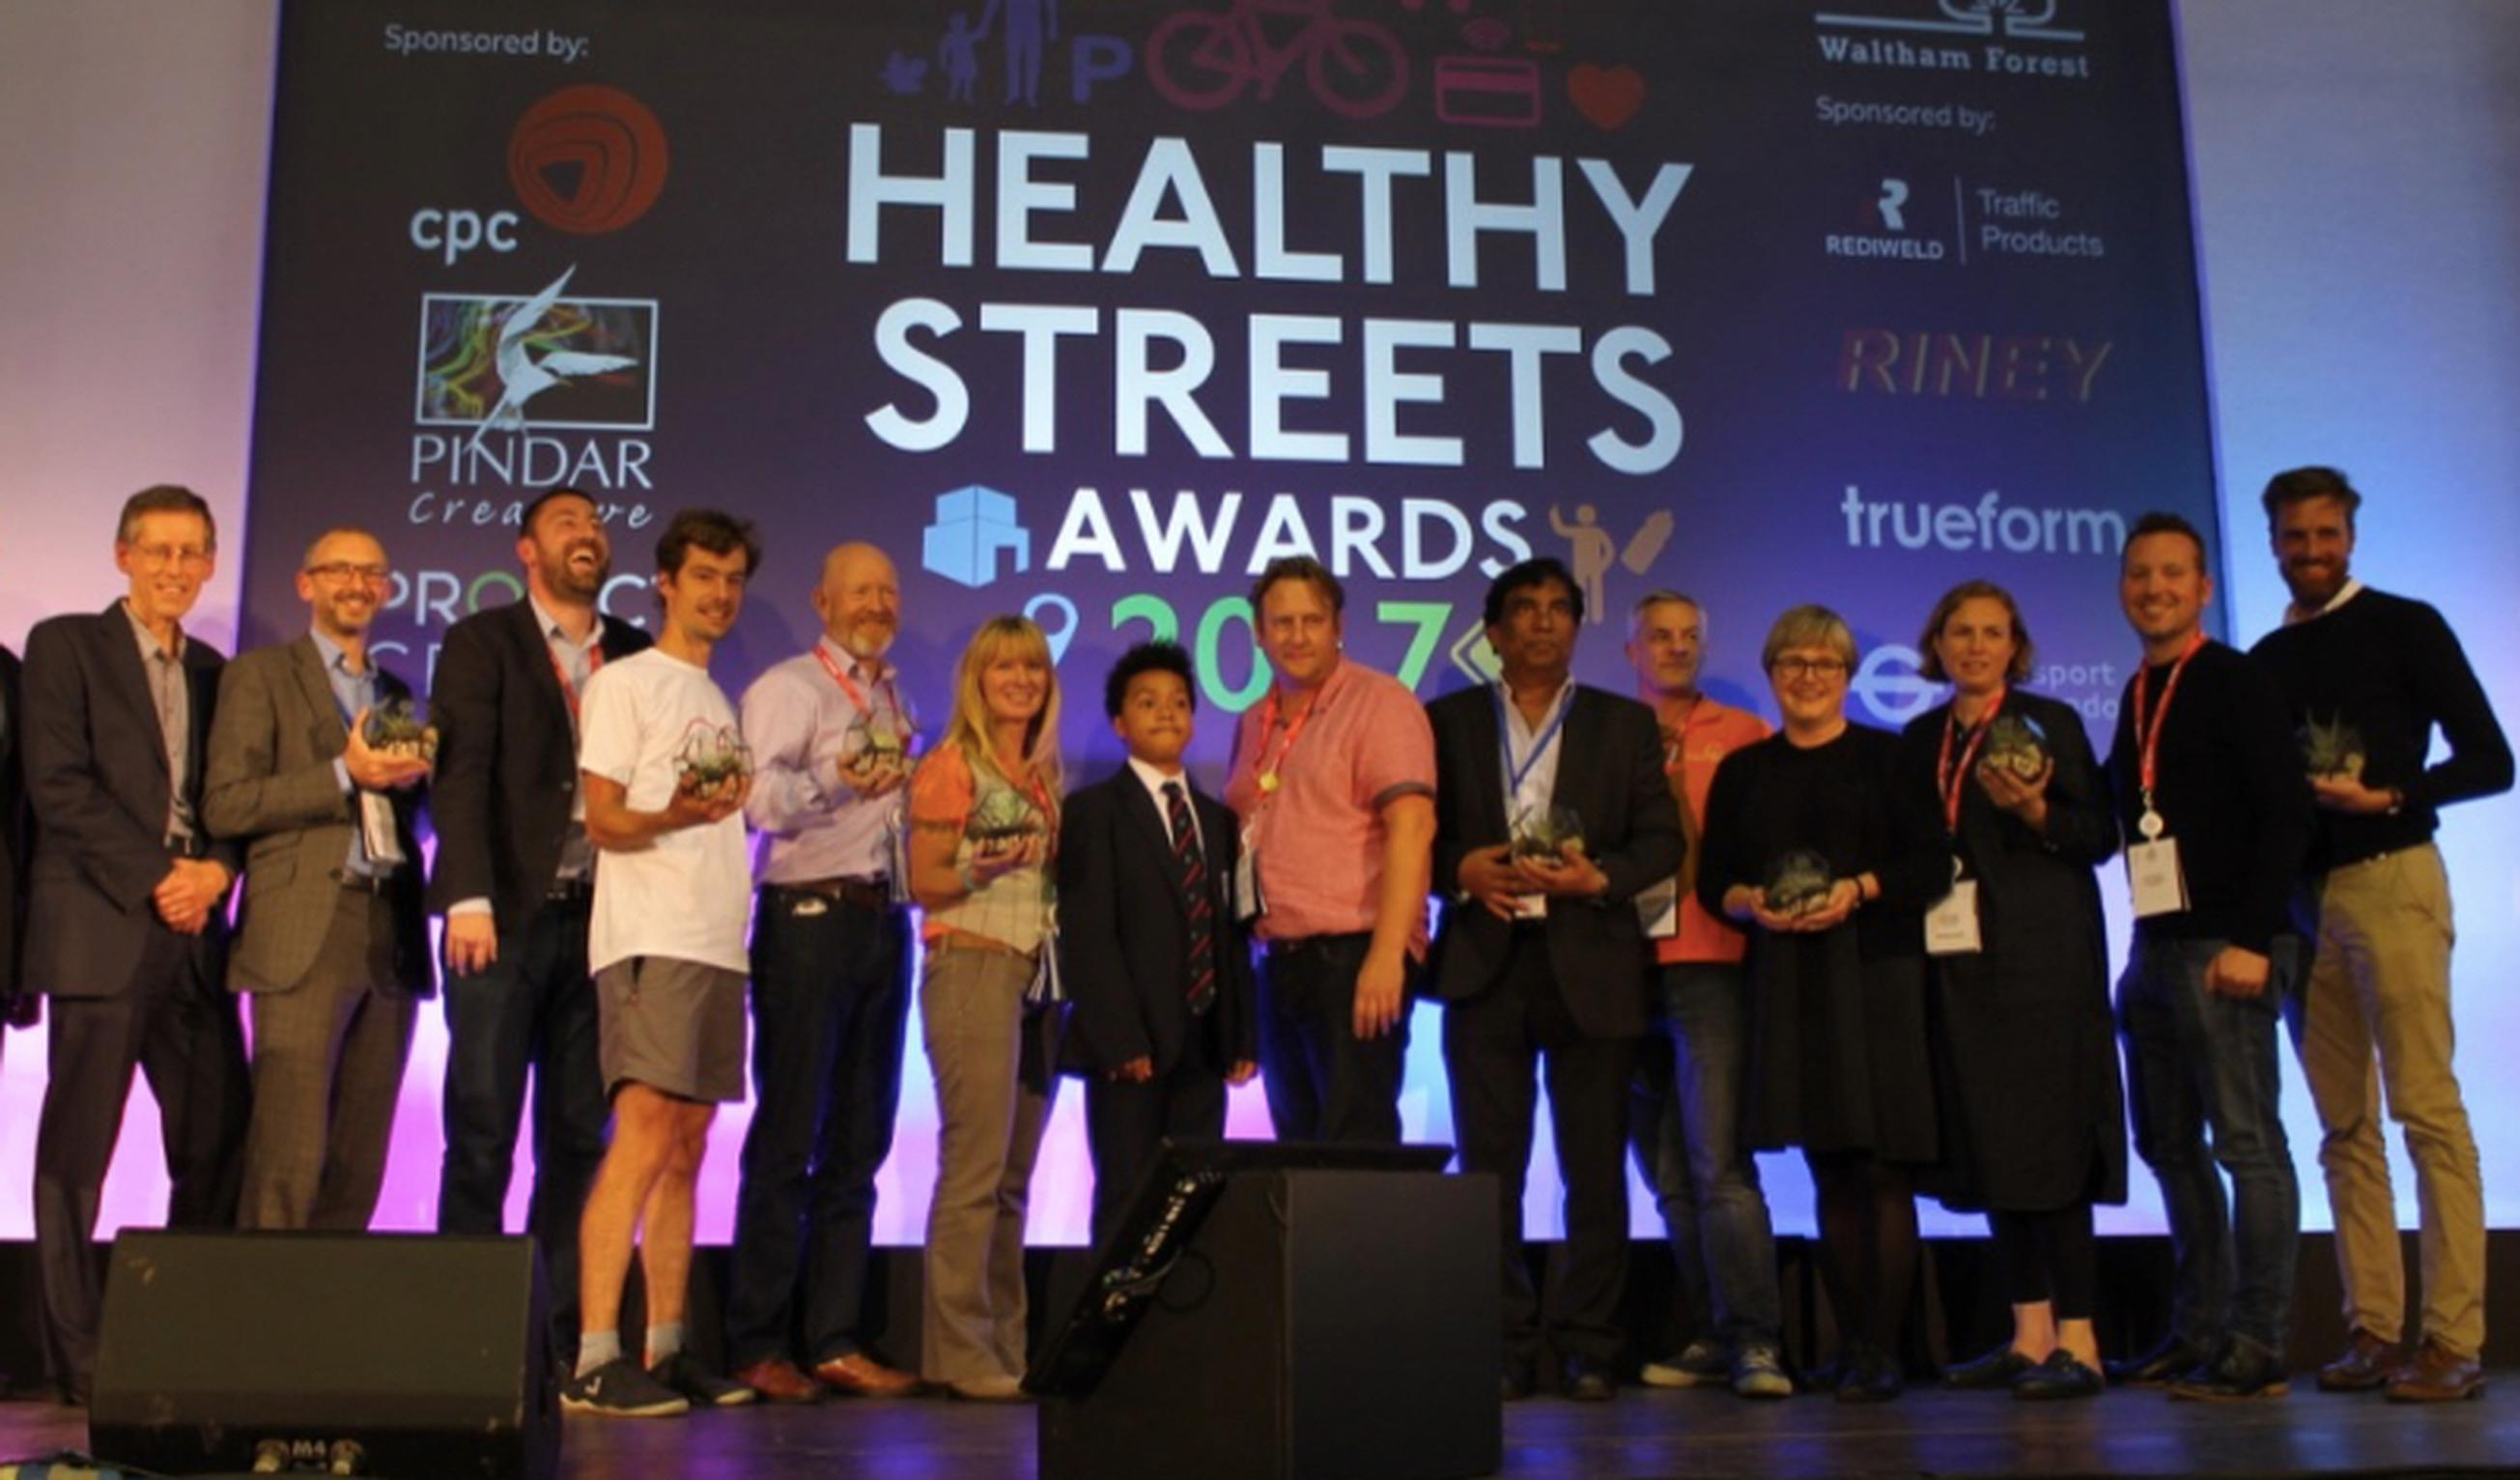 The Winners of the Healthy Streets Awards 2017